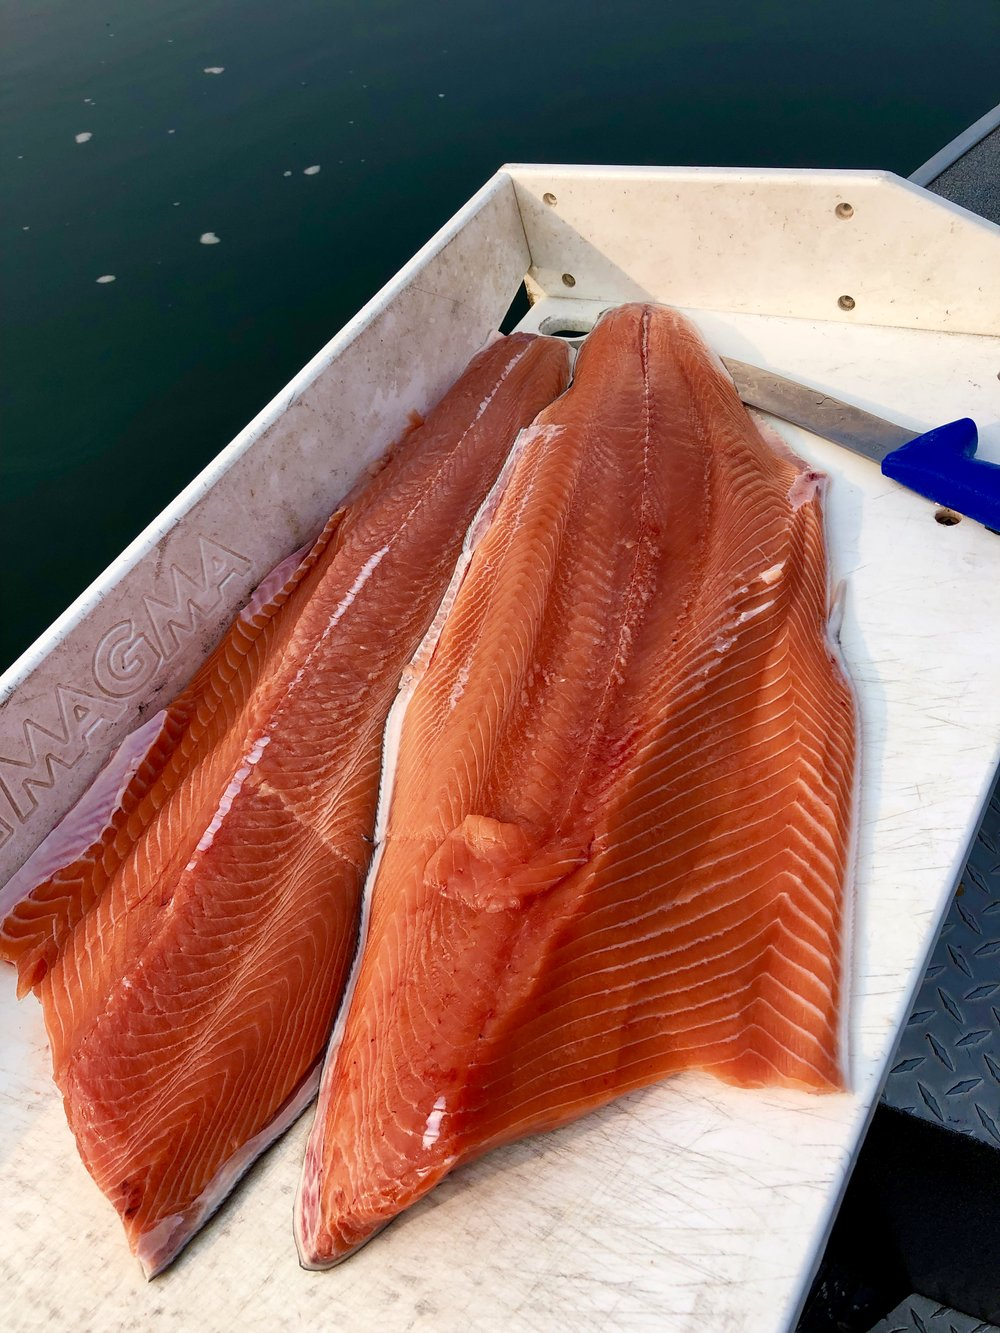 We're seeing ocean fresh fillets from these bright King salmon!